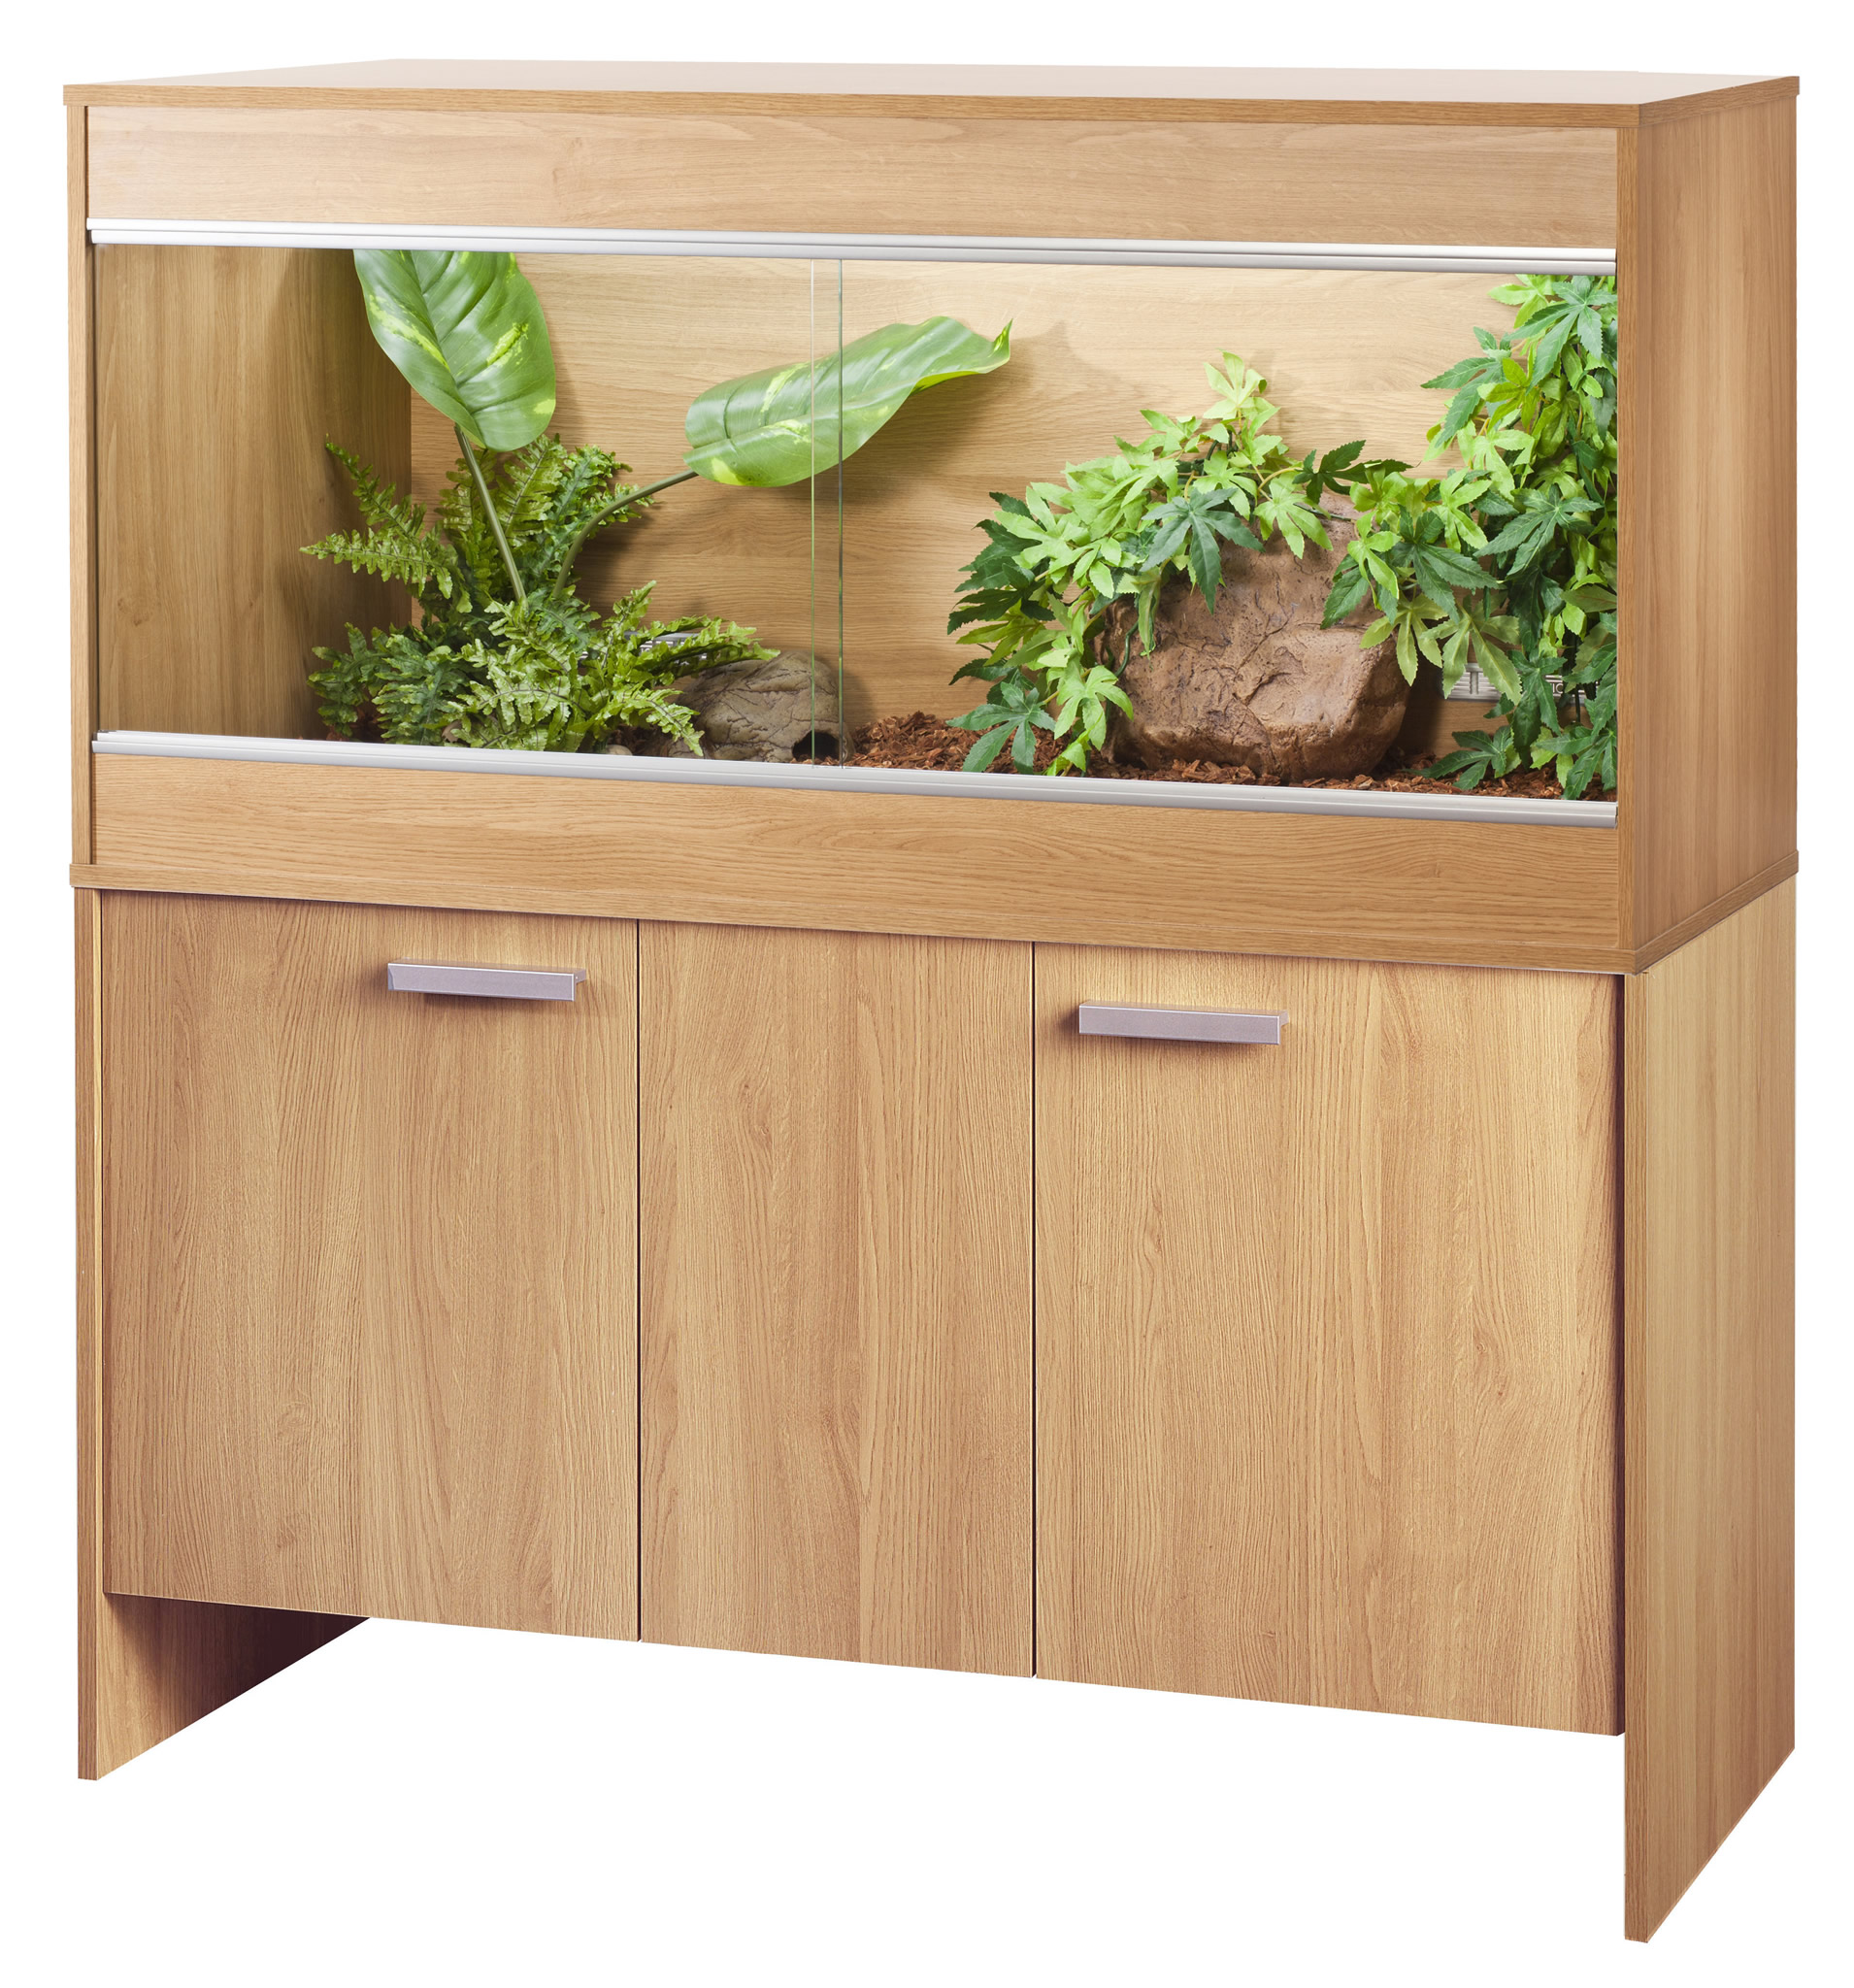 vivarium and cabinet | memsaheb.net